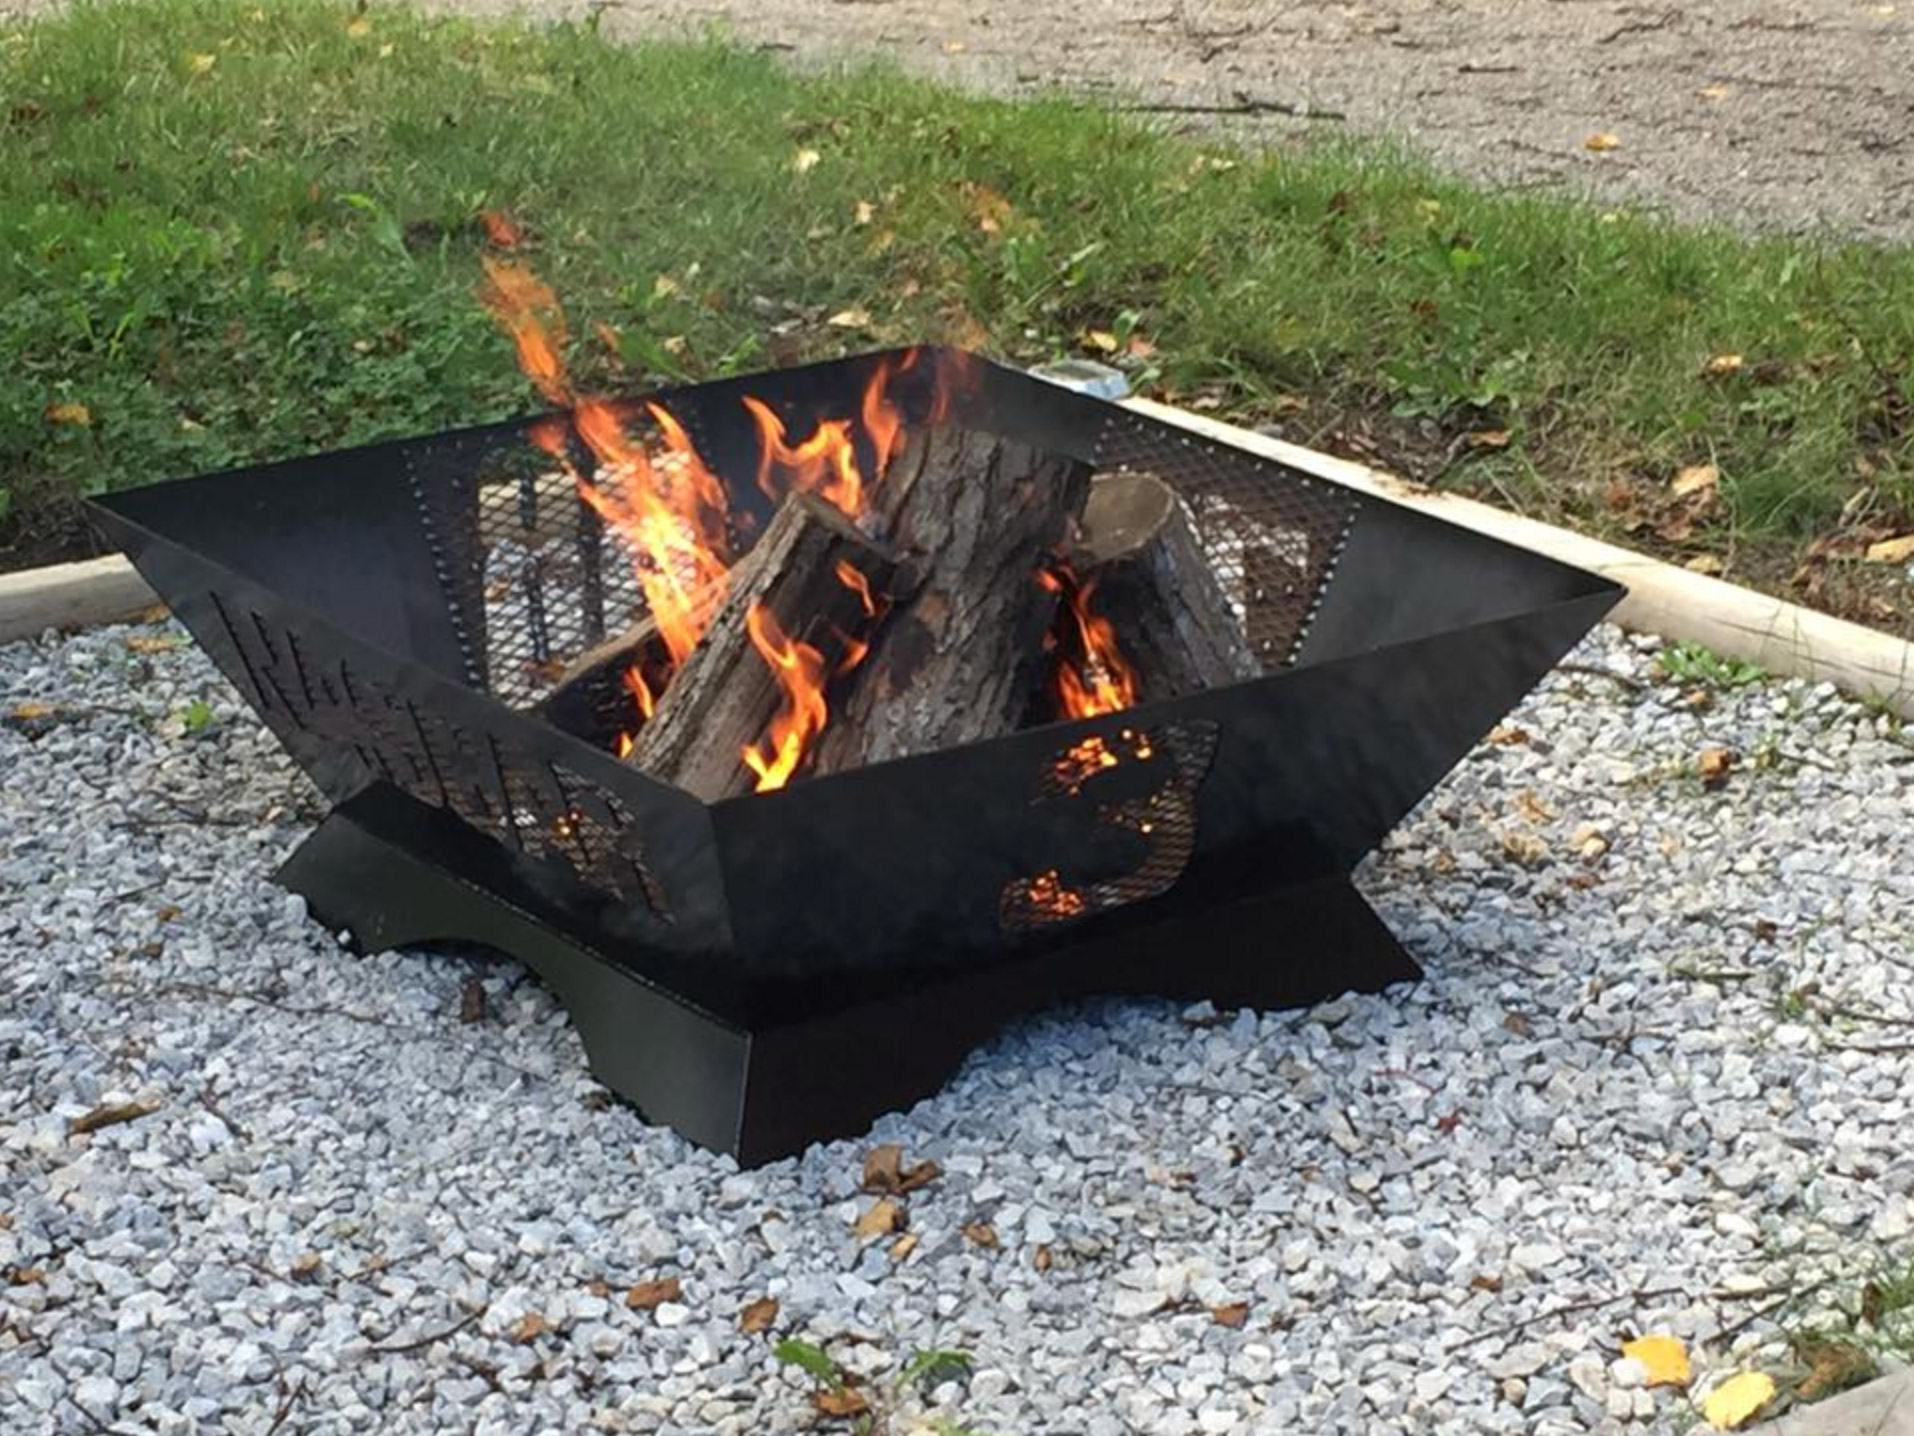 Rector provides customized solutions including steel firepits